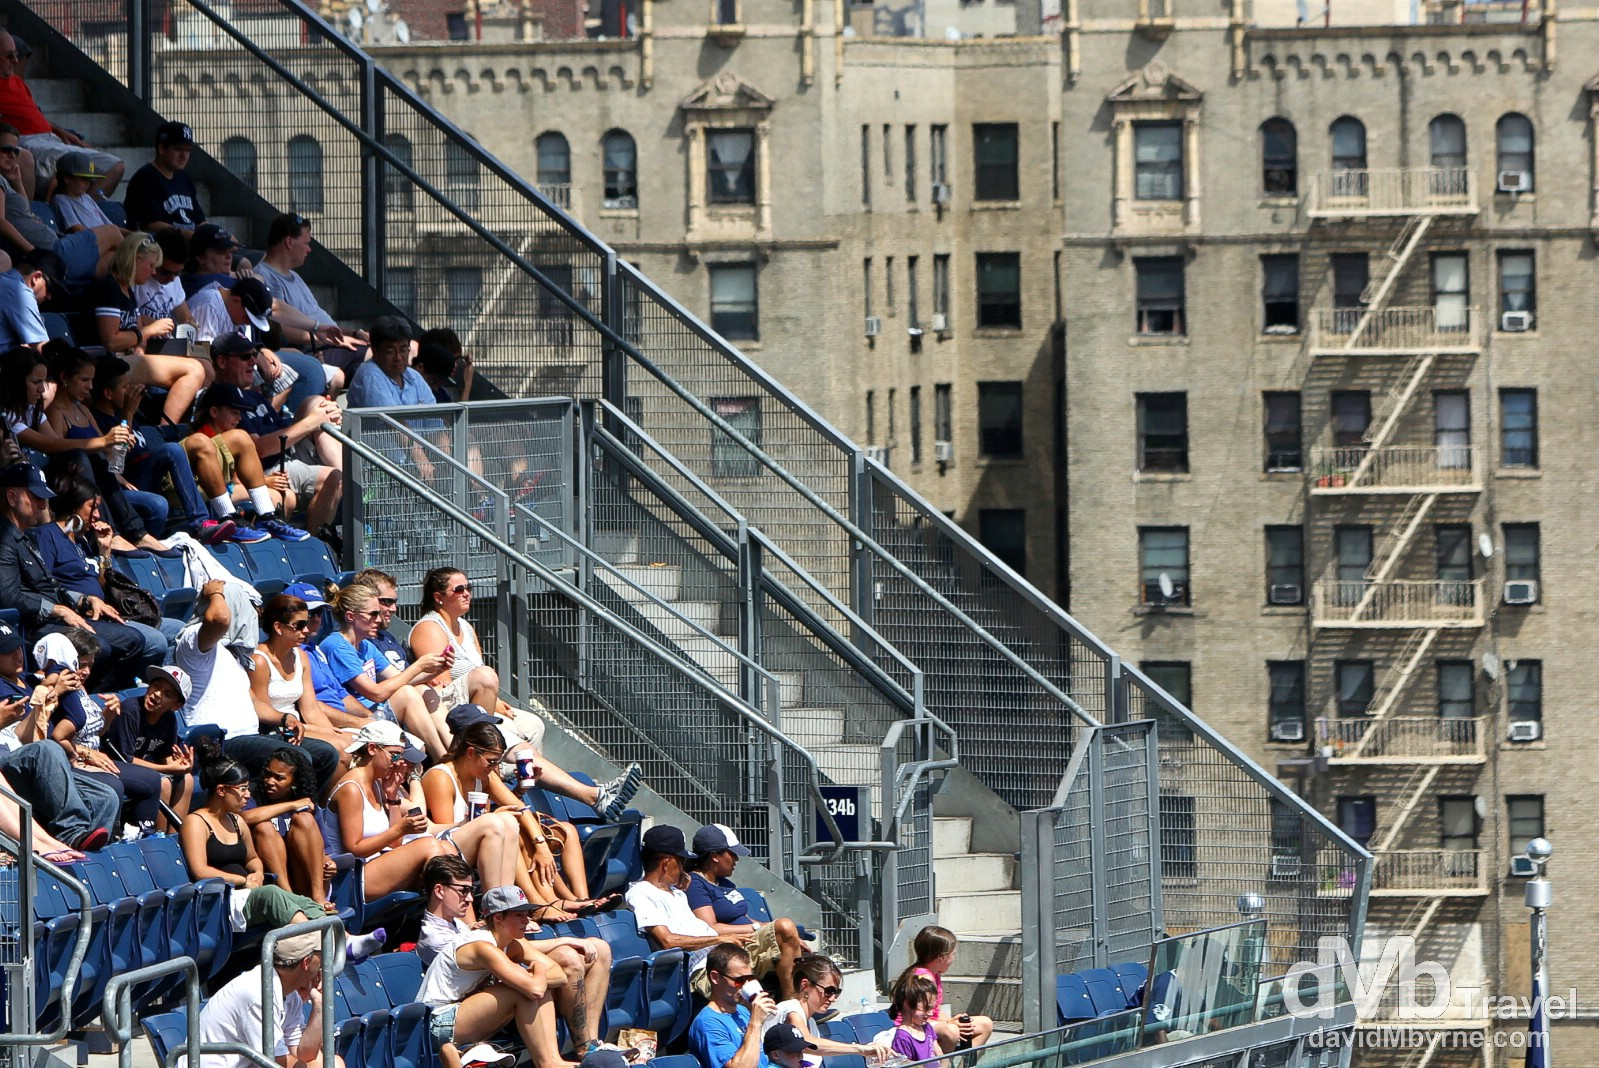 People in the stands at Yankee Stadium, The Bronx, New York. July 14th 2013.